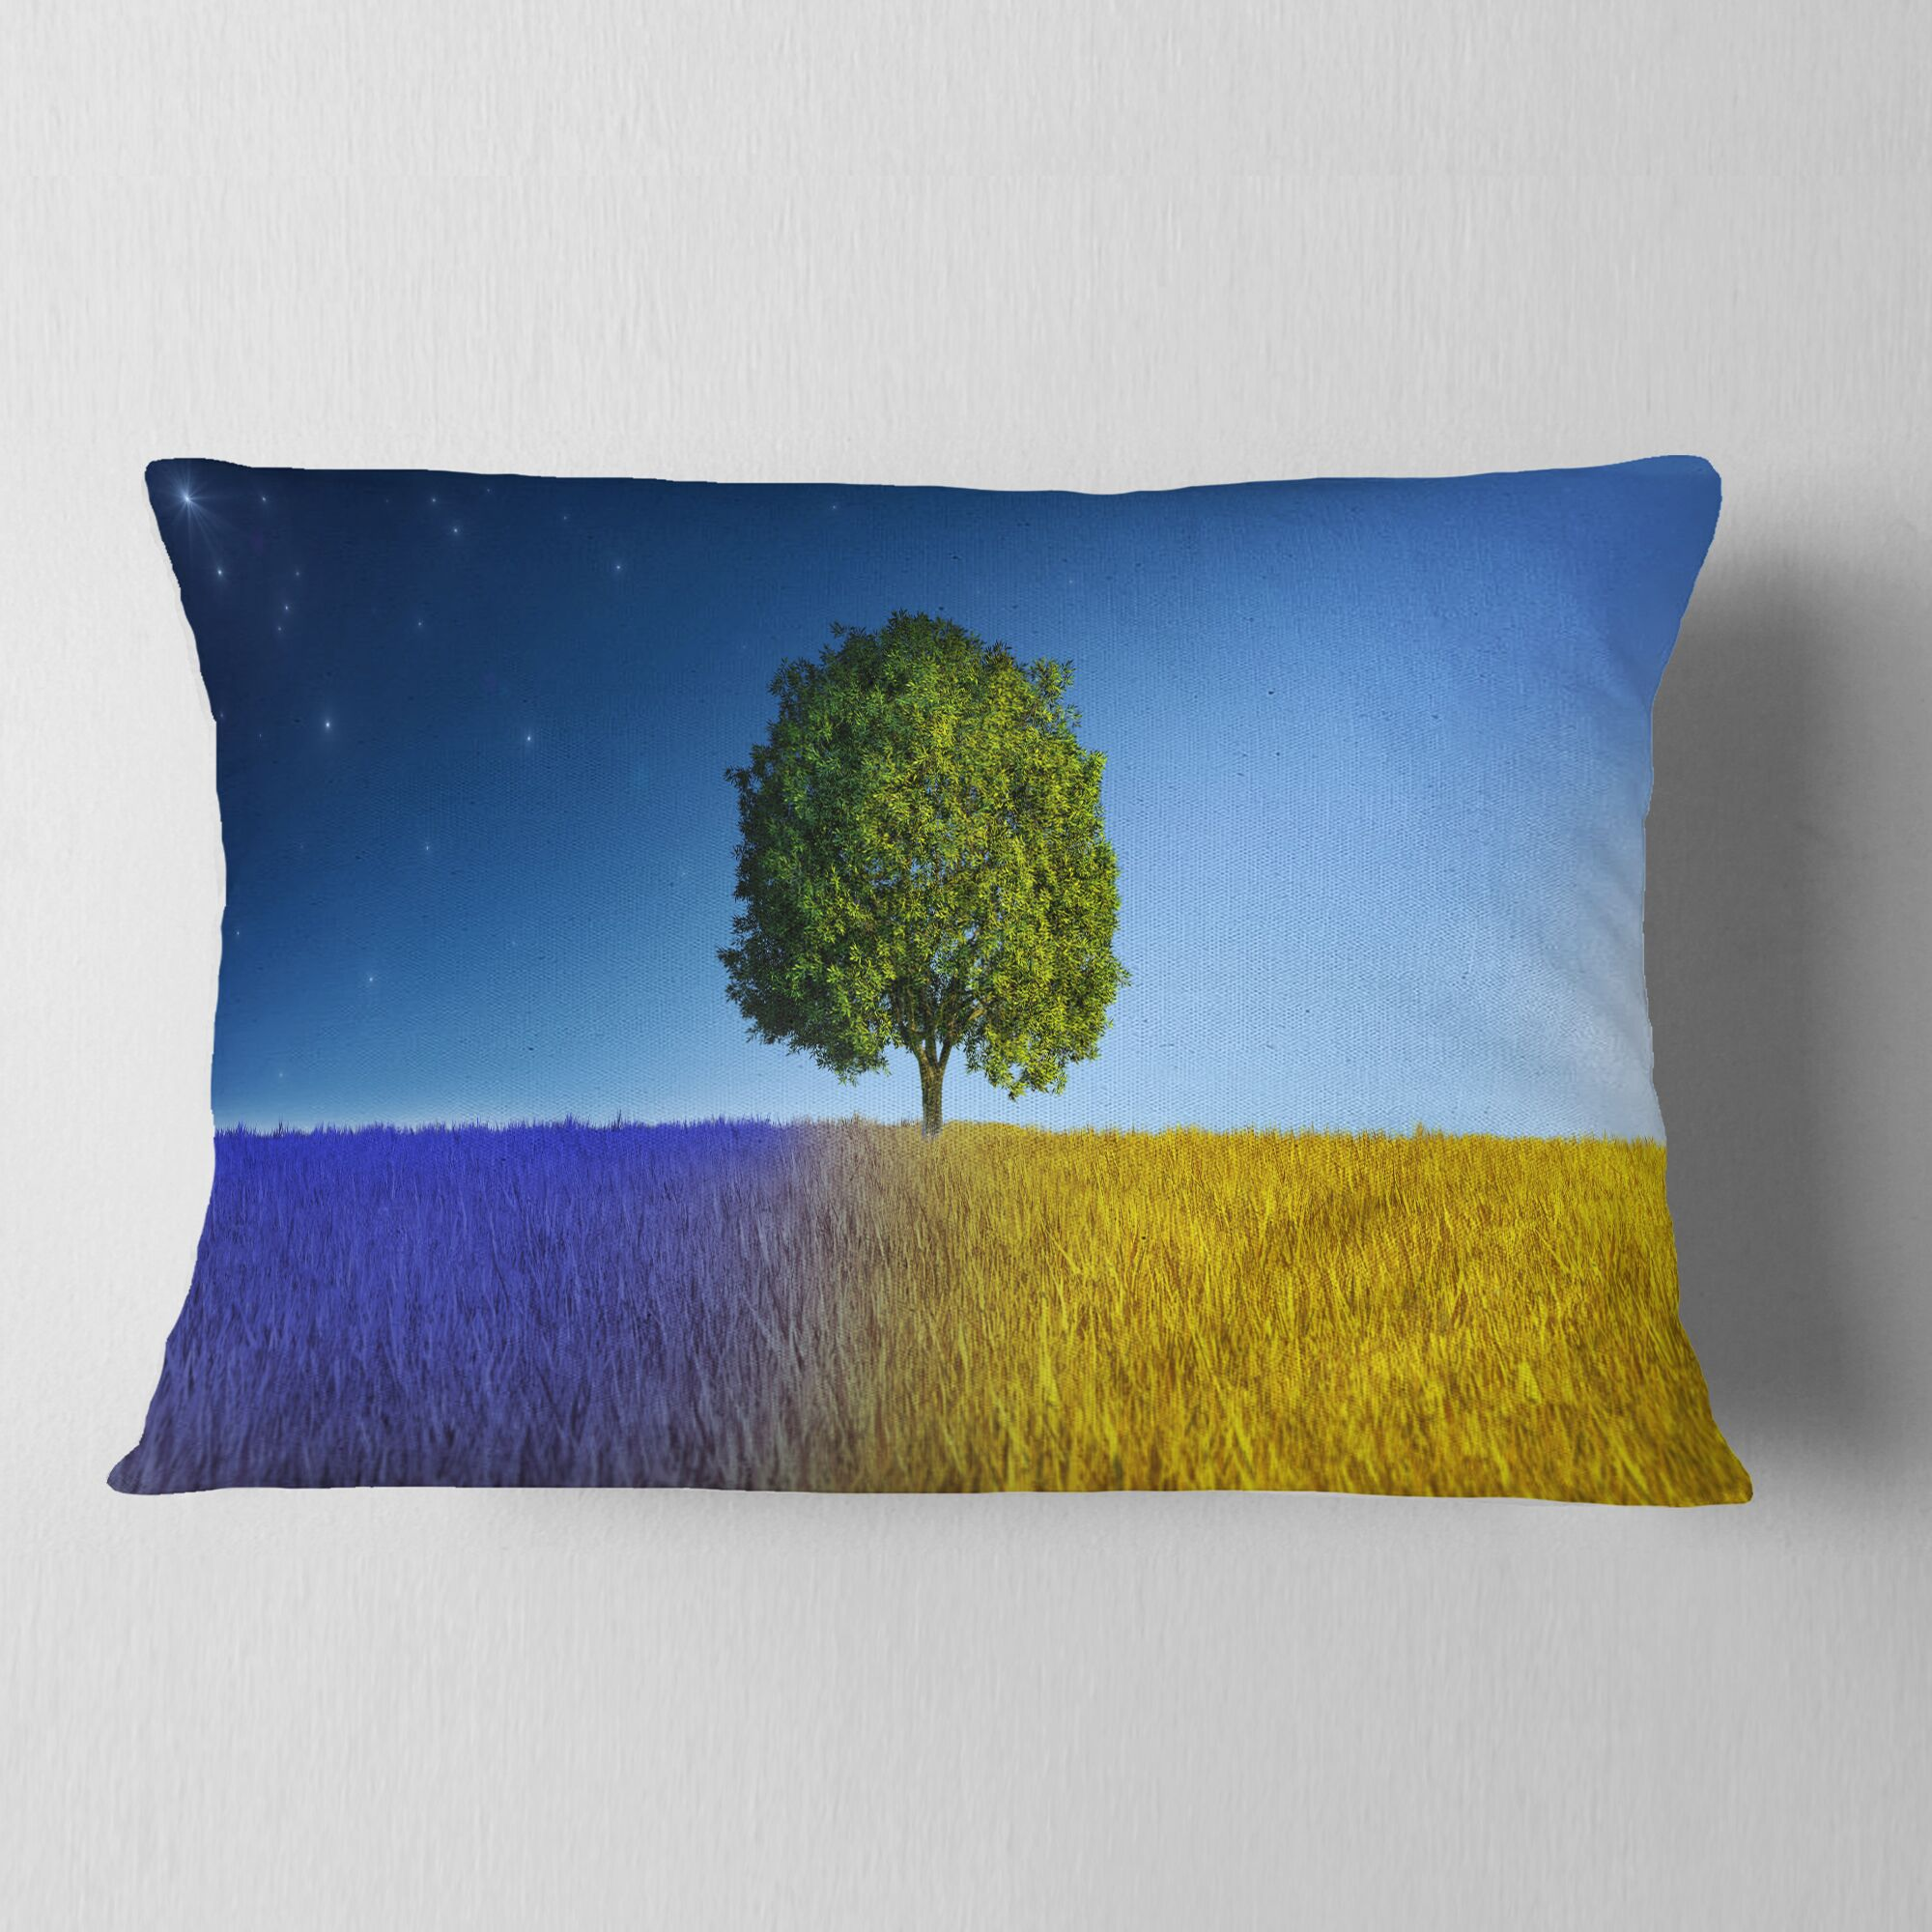 Designart 'Tree in Night and Day' Landscape Printed Throw Pillow